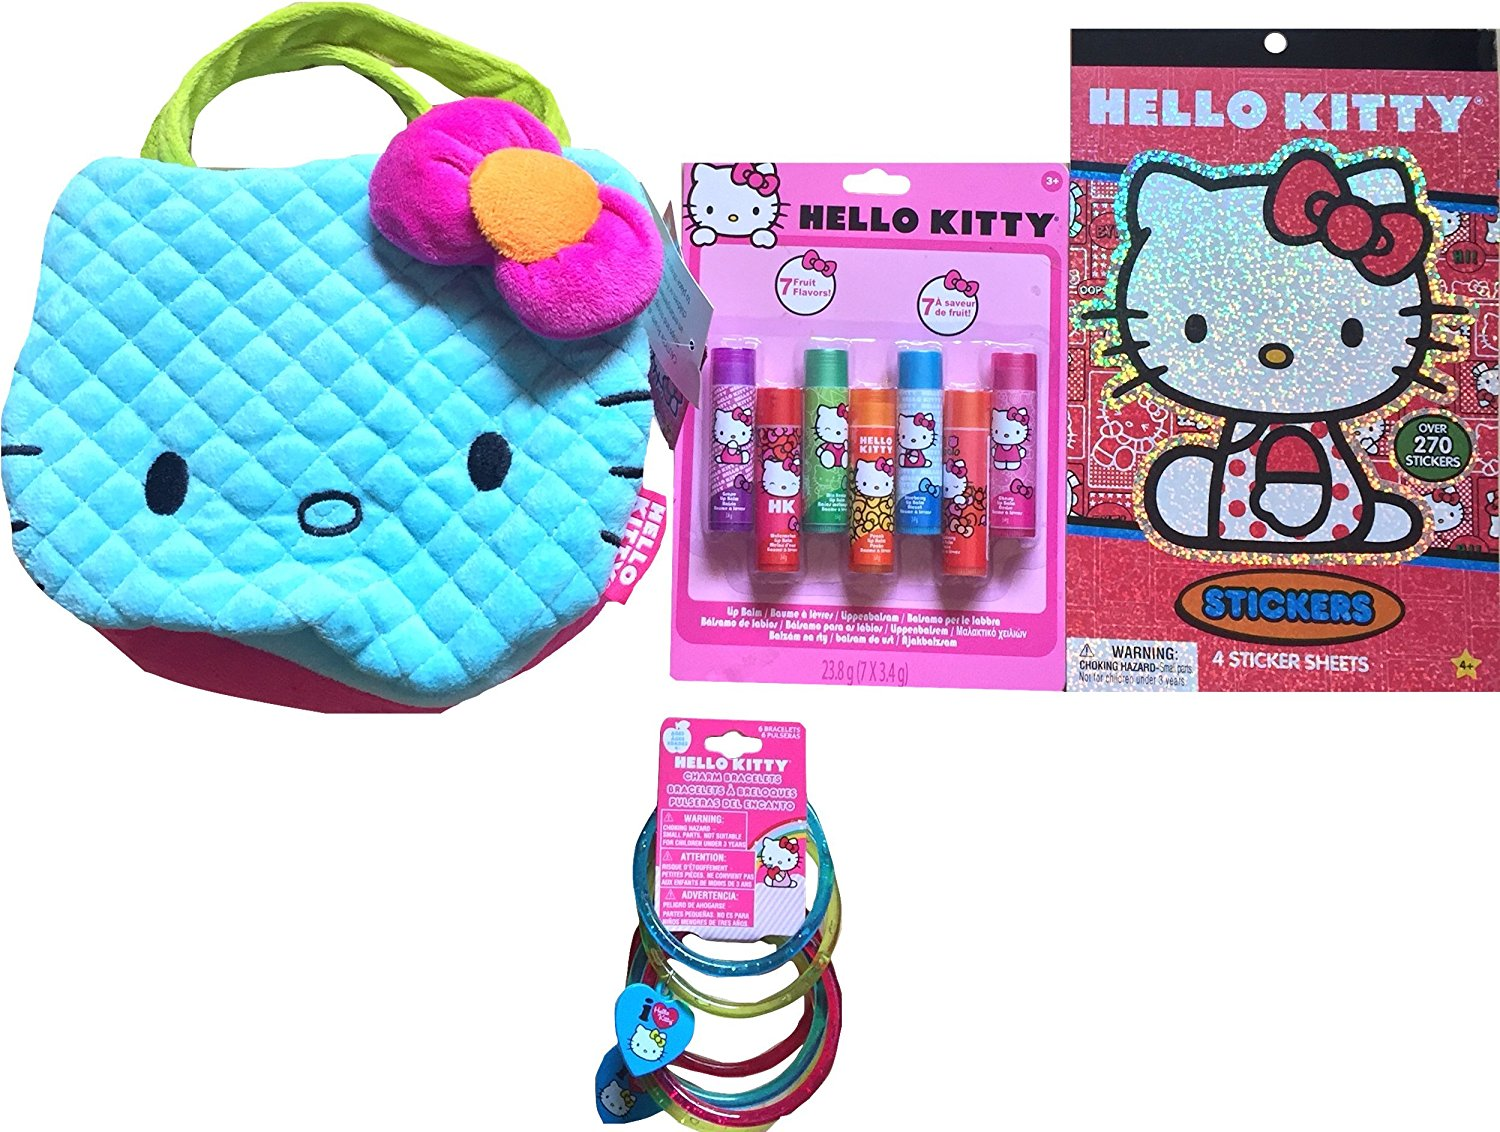 Hello Kitty Children's Pretend Play Cosmetic Gift Set Includes Hello Kitty Face Purse , Hello Kitty Fruit Flavored Lip Balms, Hello Kitty Charm Bracelets, Hello Kitty Stickerbook 4 Sheets !